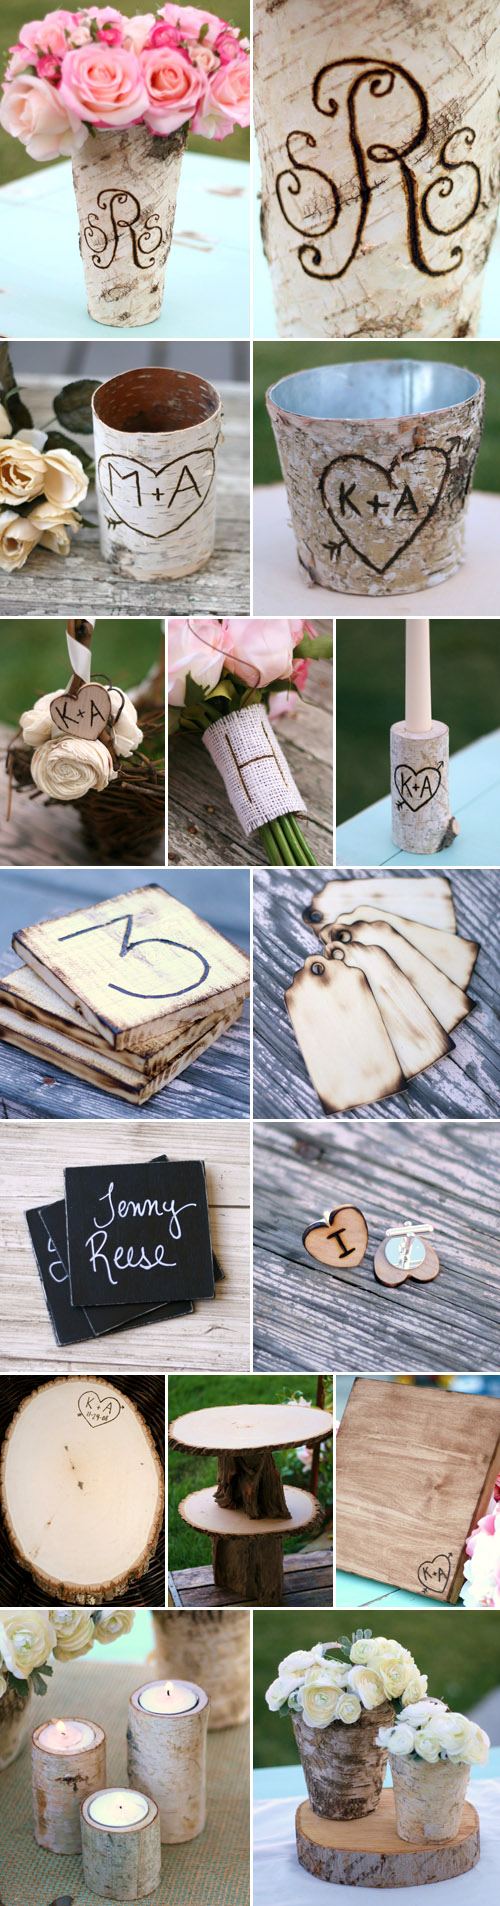 rustic woodland wedding decor and accessories from Bragging Bags on Etsy.com